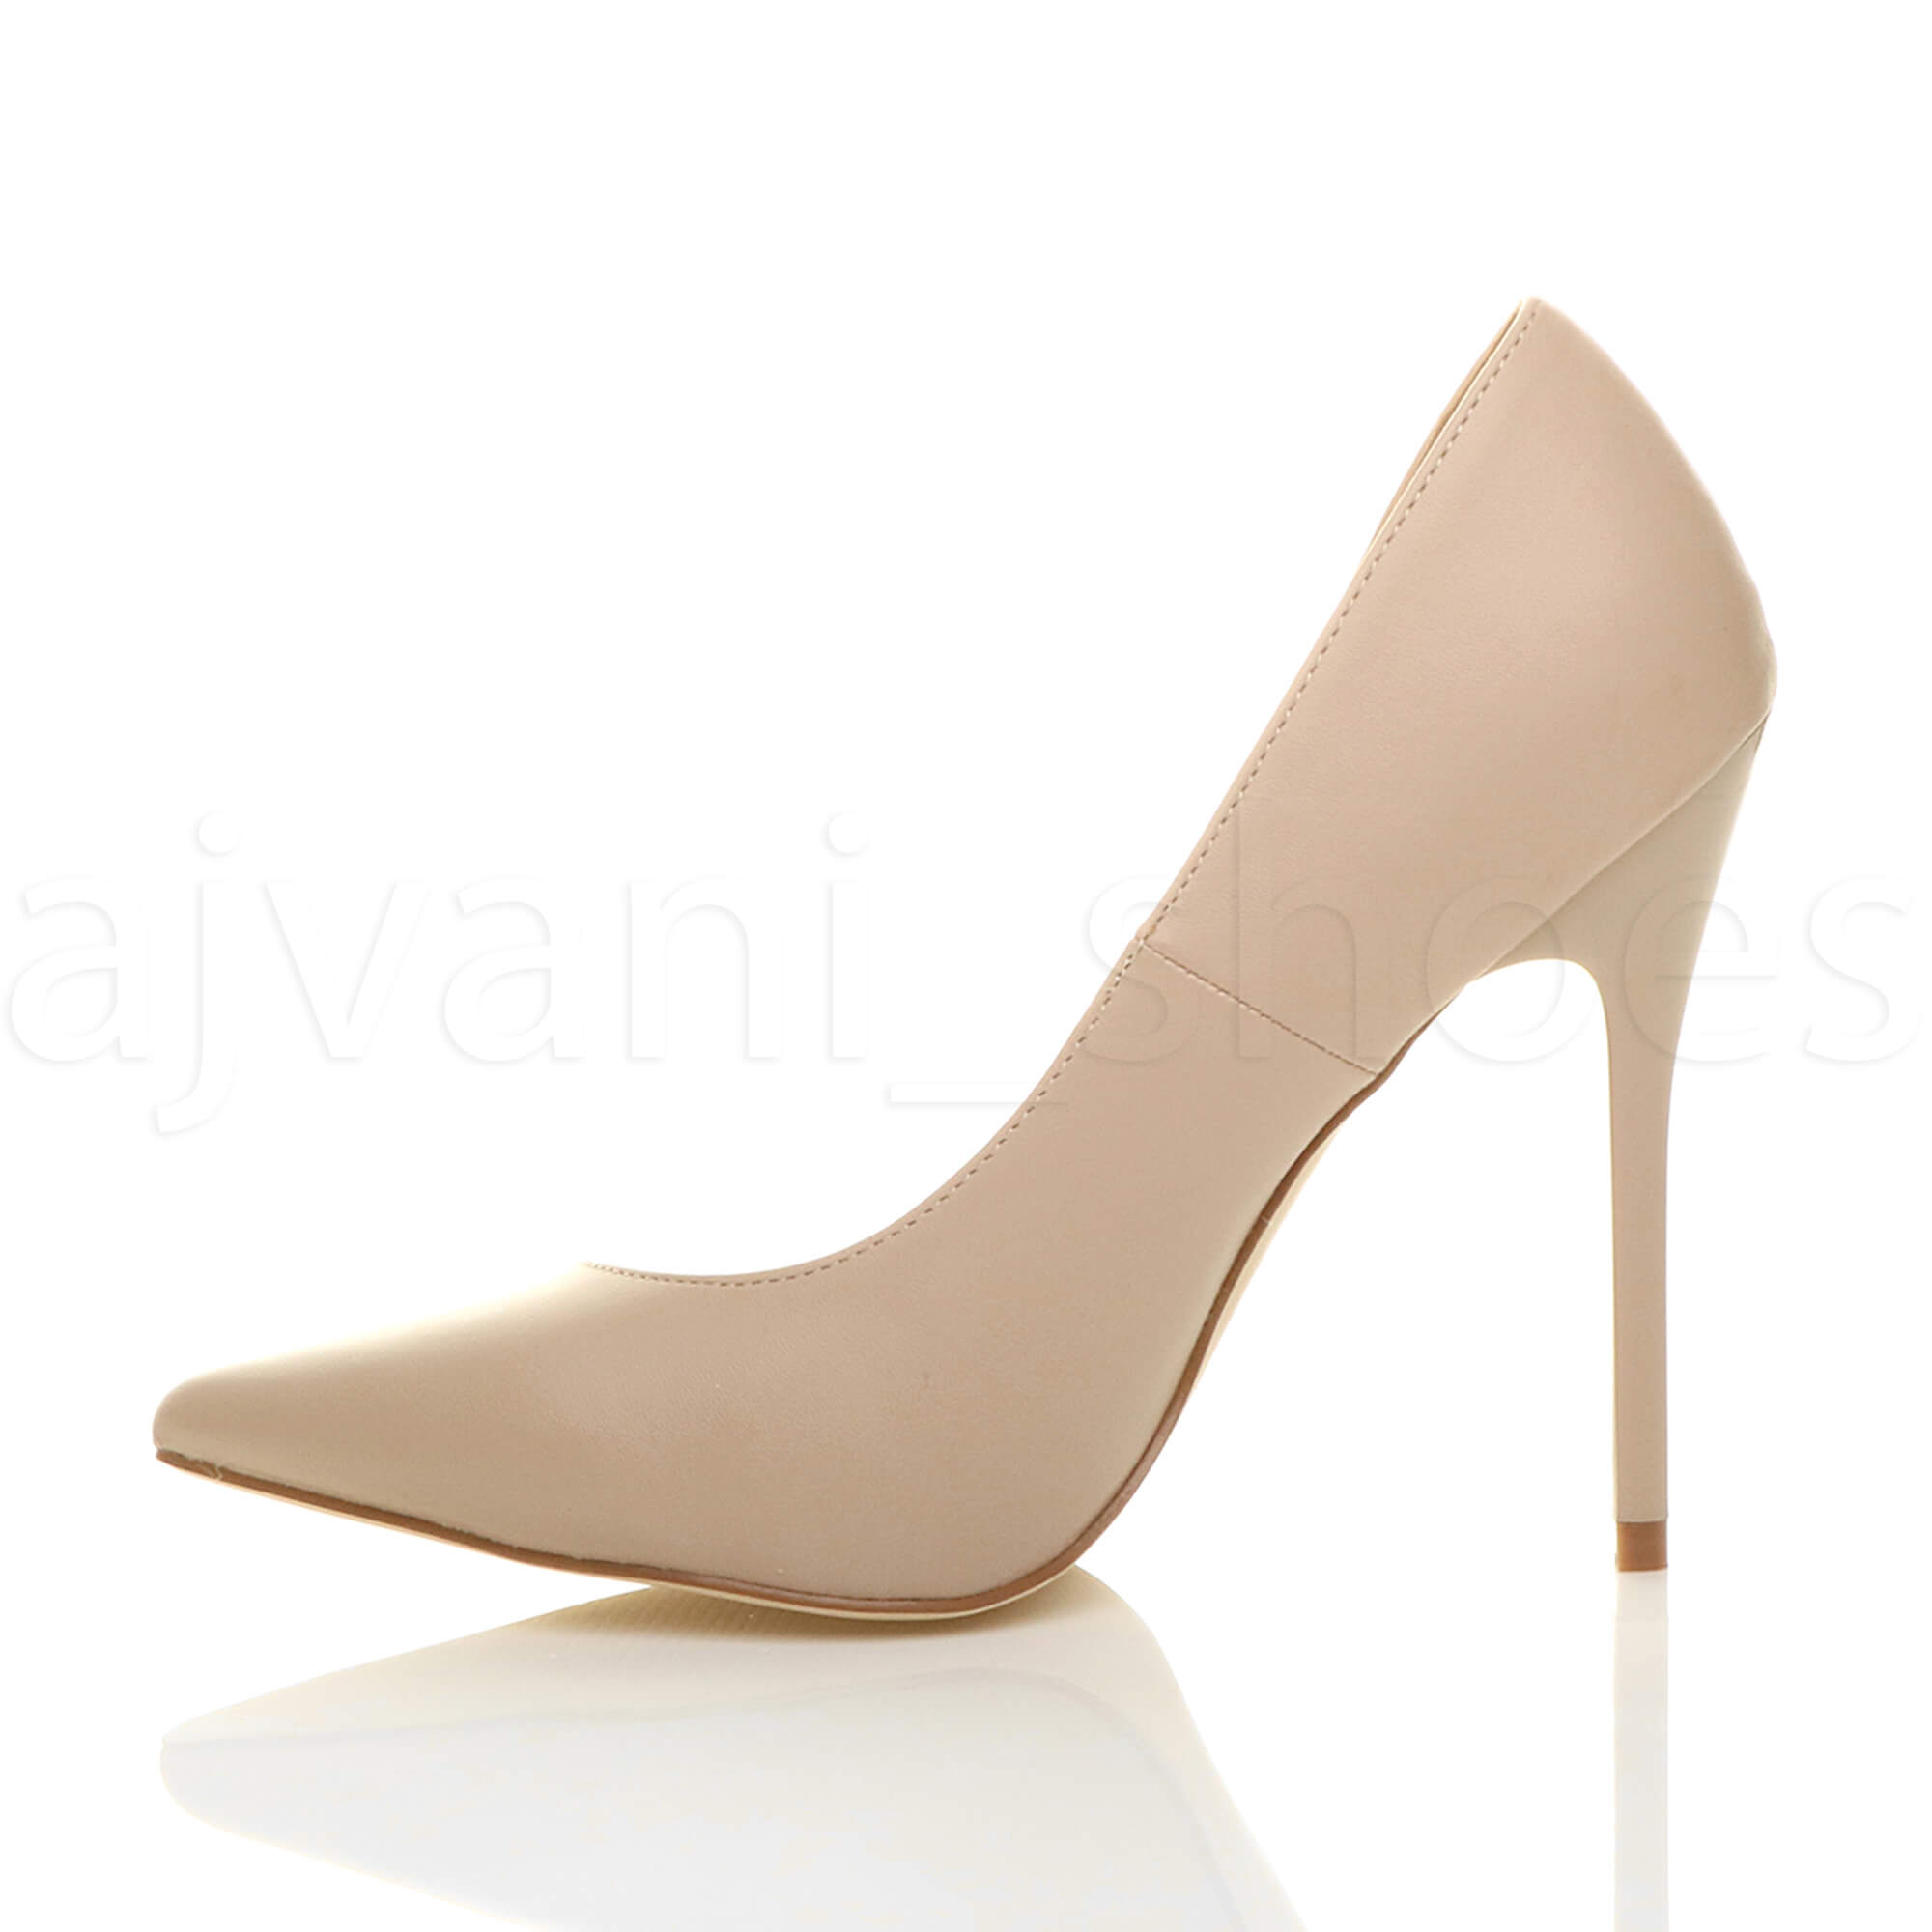 WOMENS-LADIES-HIGH-HEEL-POINTED-CONTRAST-COURT-SMART-PARTY-WORK-SHOES-PUMPS-SIZE thumbnail 122